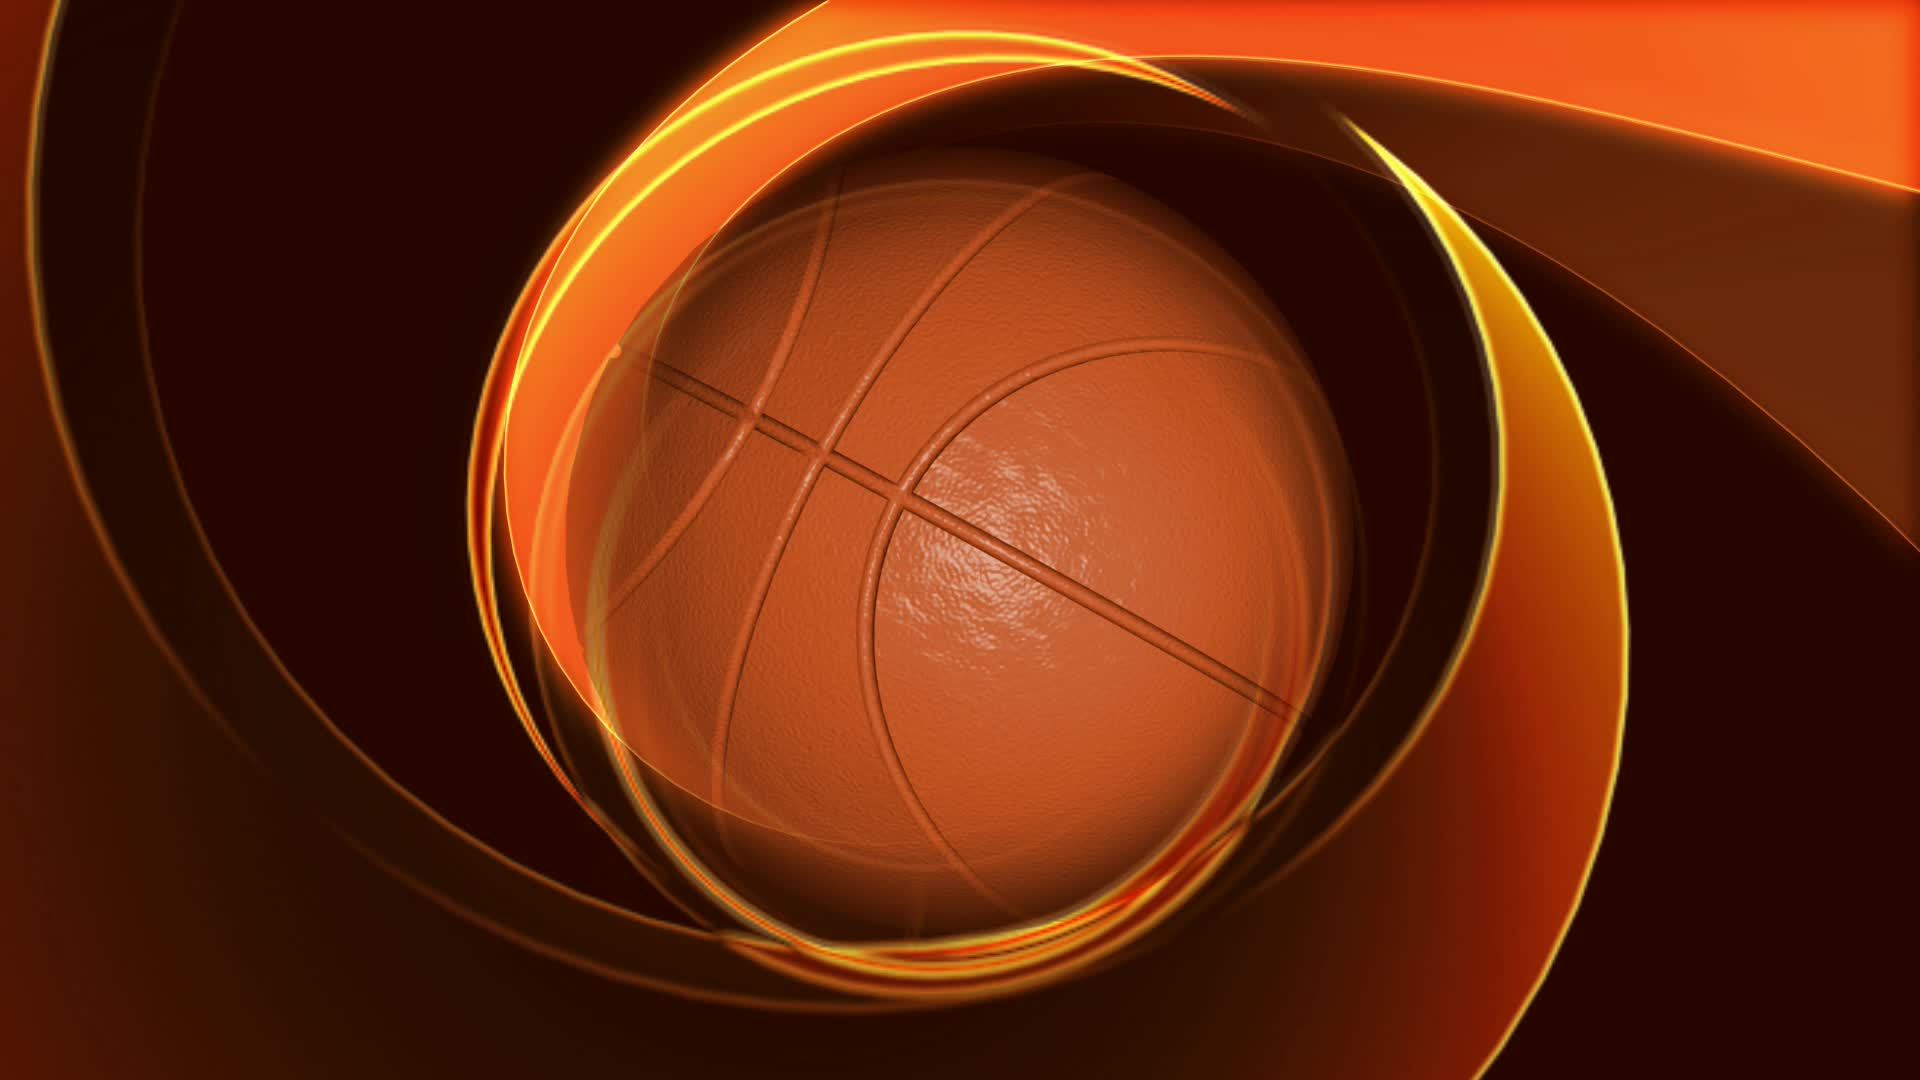 Watch free video Spinning Basketball on Abstract Background